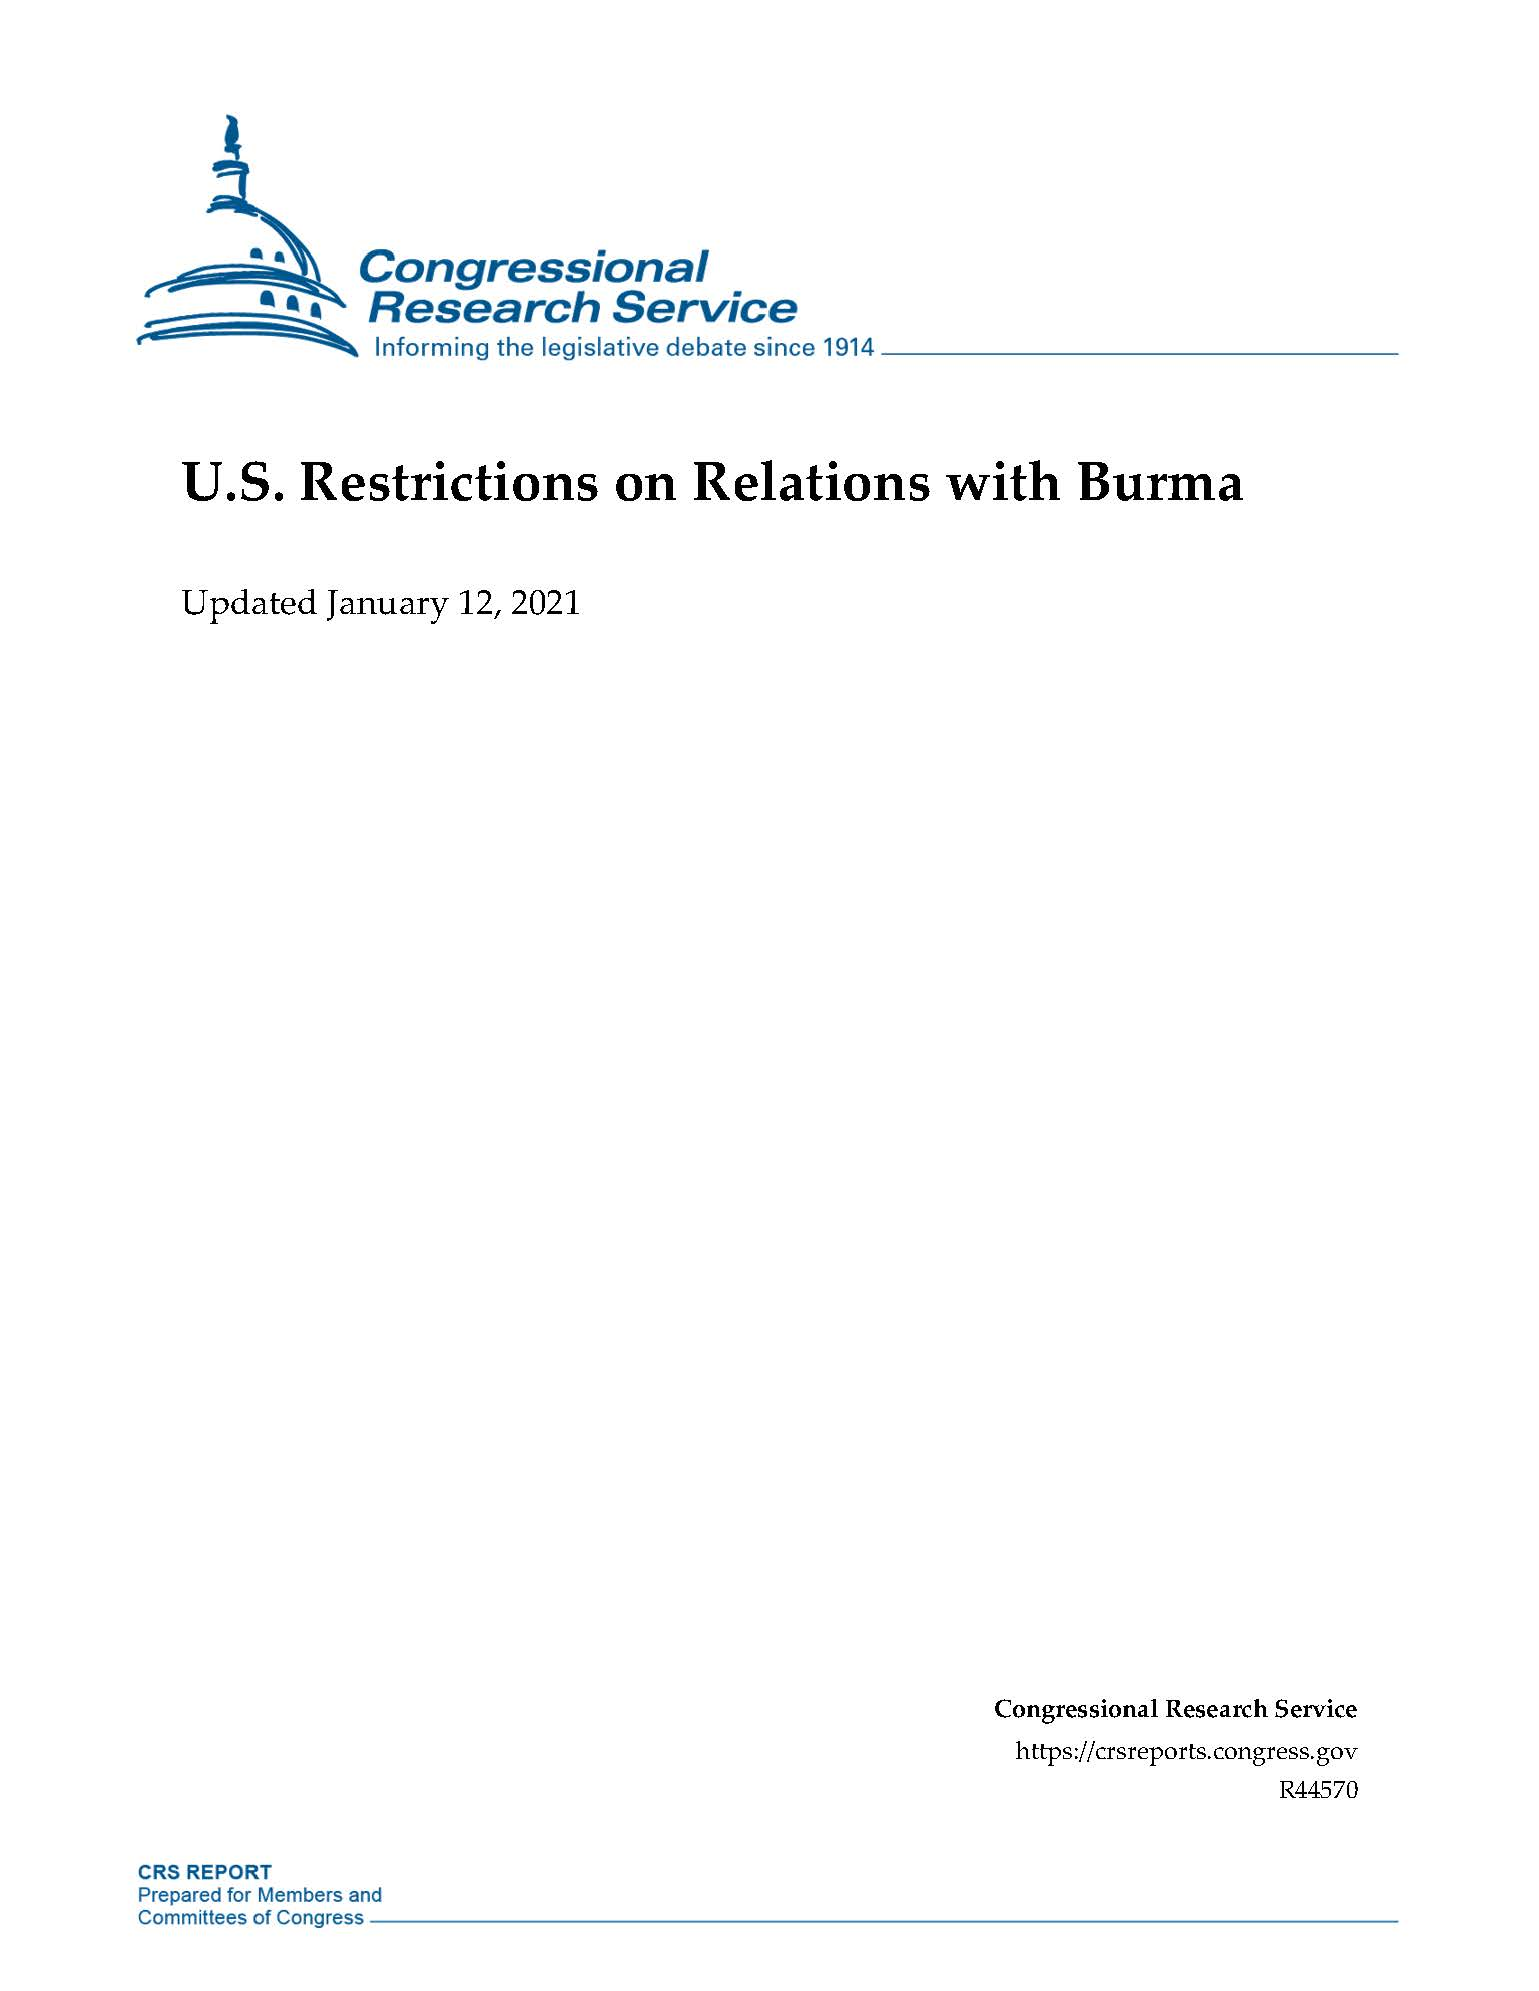 US Restrictions on Relations with Burma